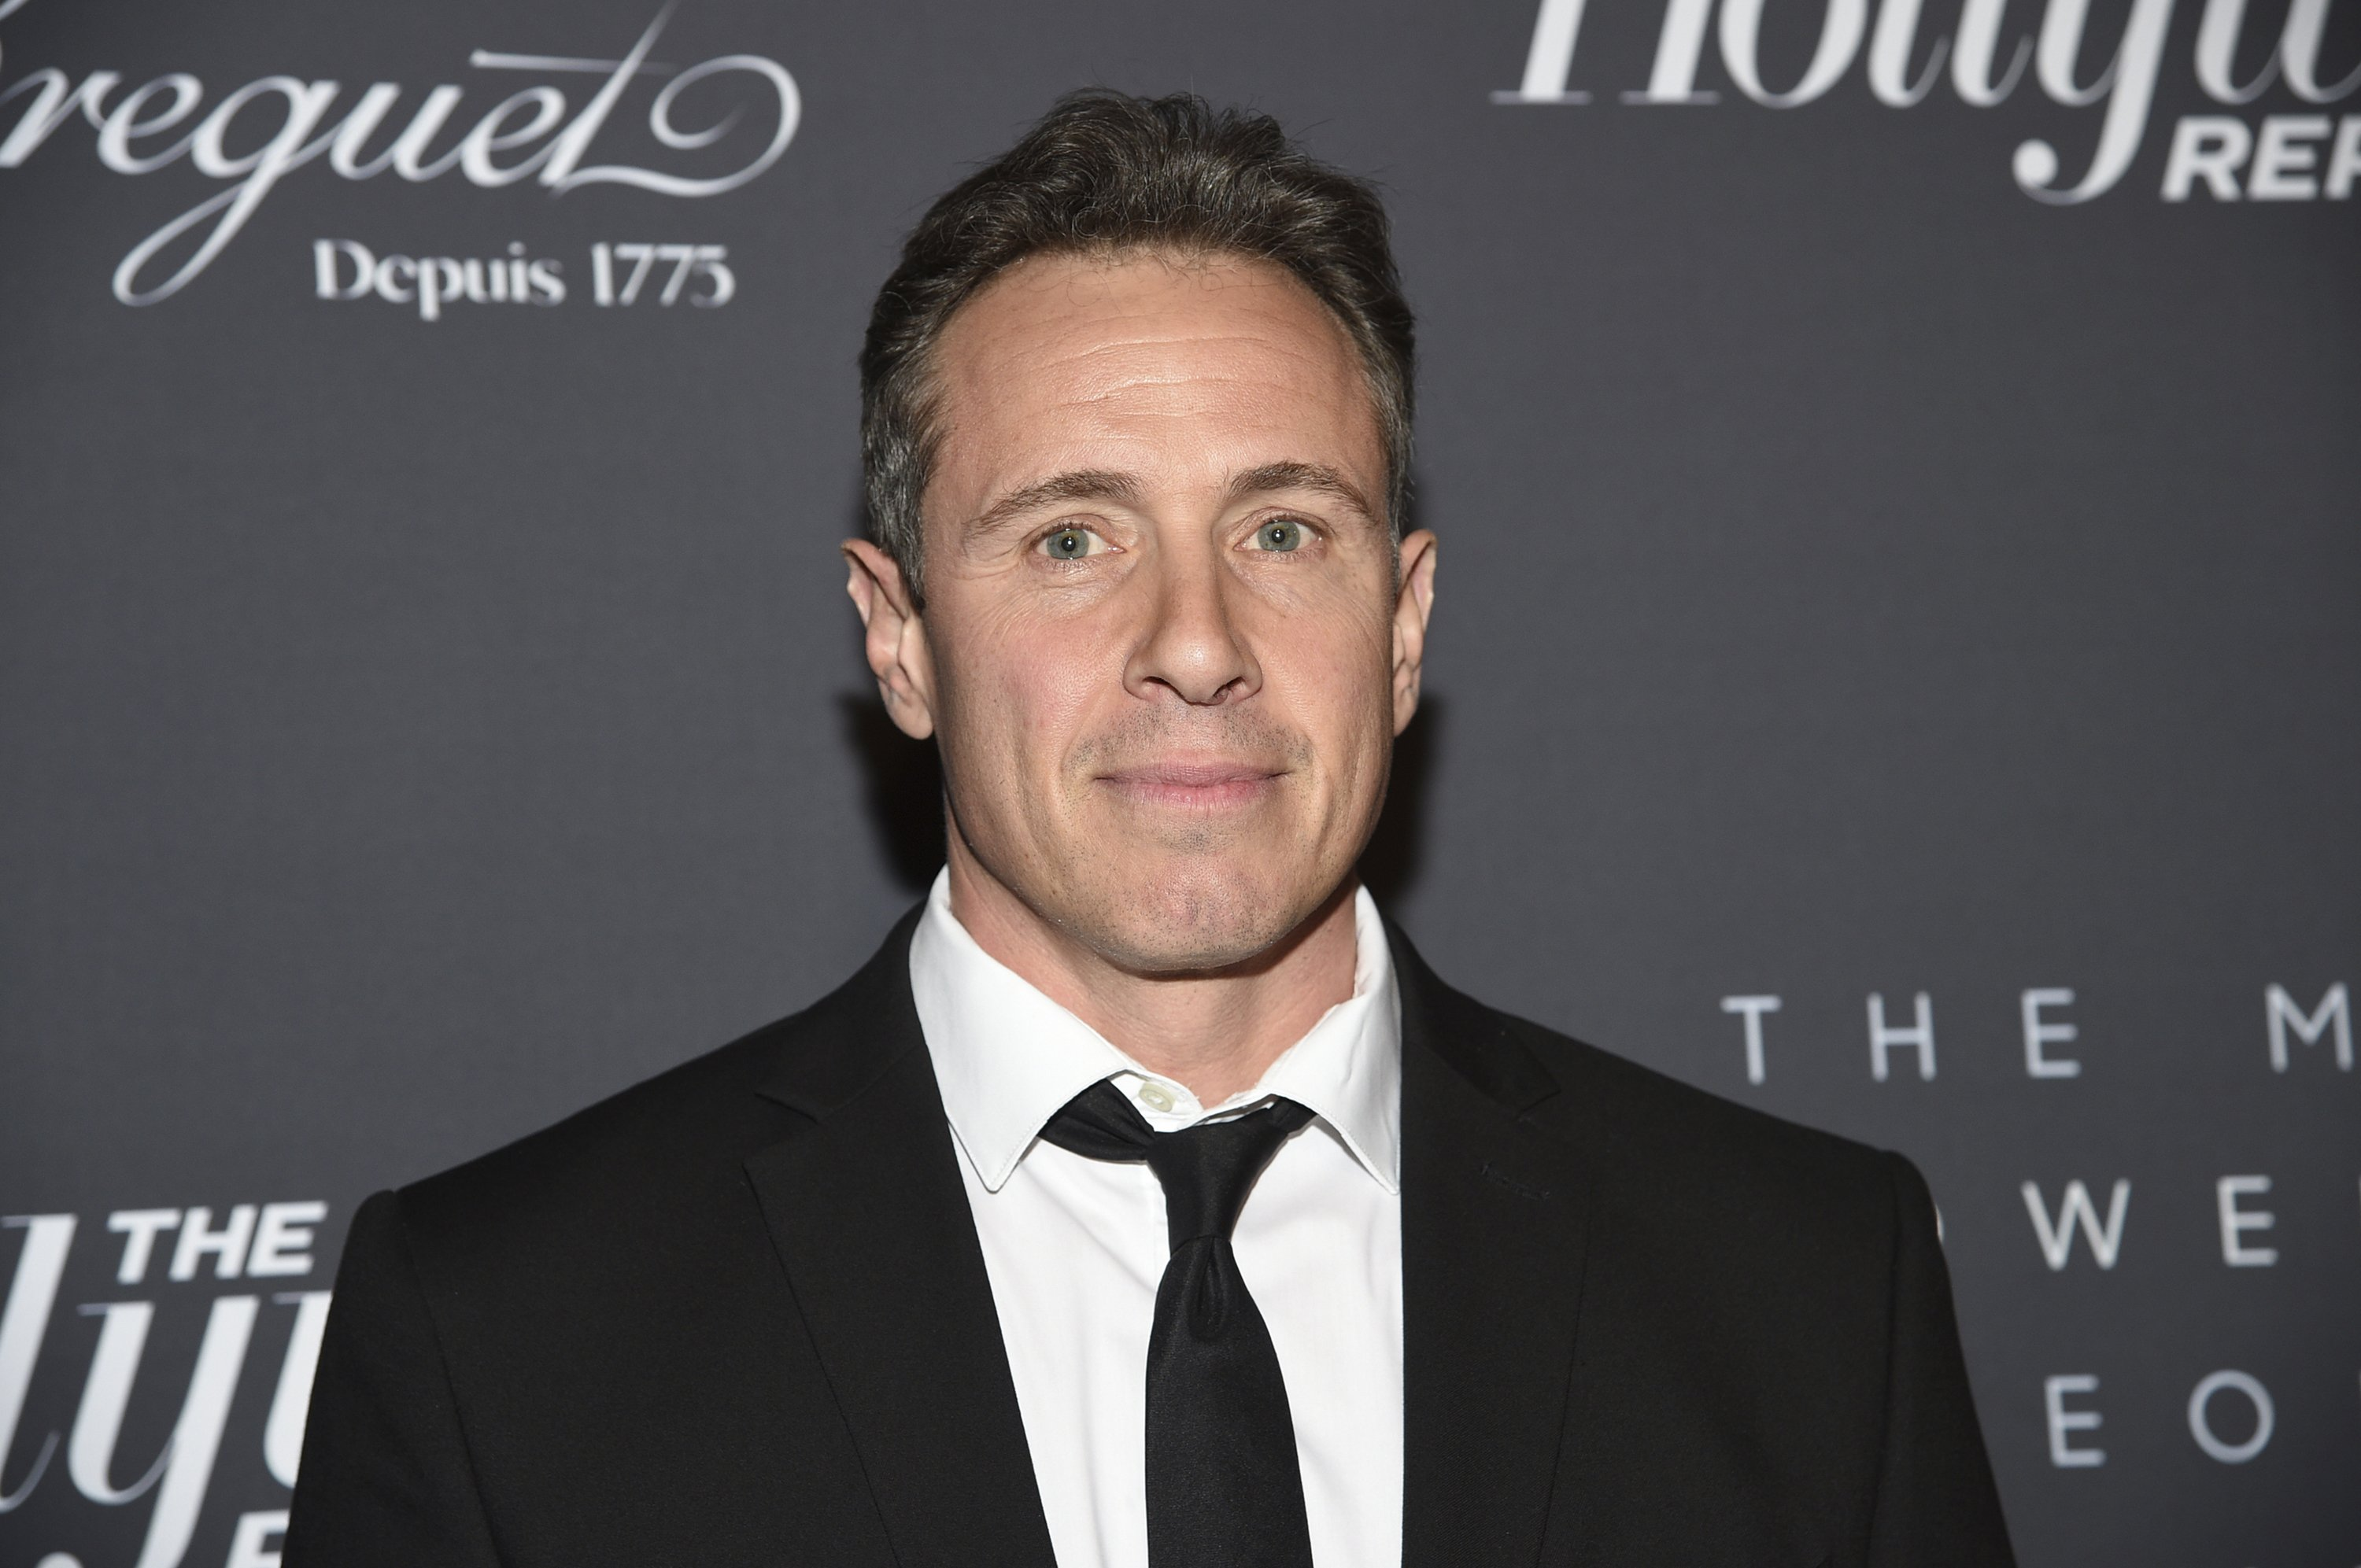 Reports say CNN's Chris Cuomo got special COVID-19 testing